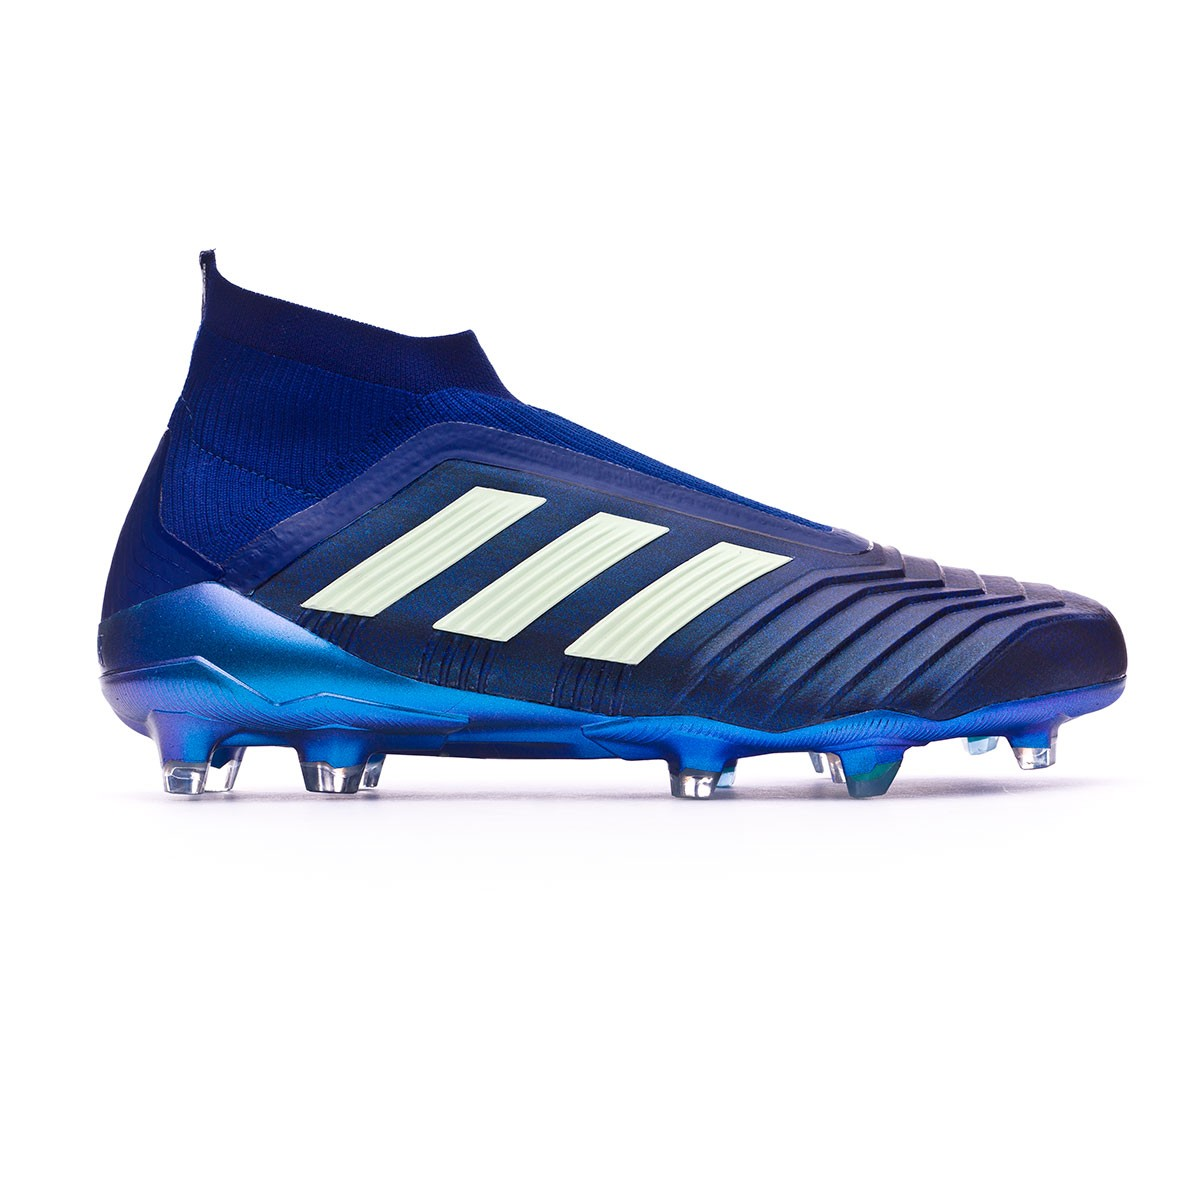 finest selection 9697d 821c5 CATEGORY. Football boots · adidas football boots